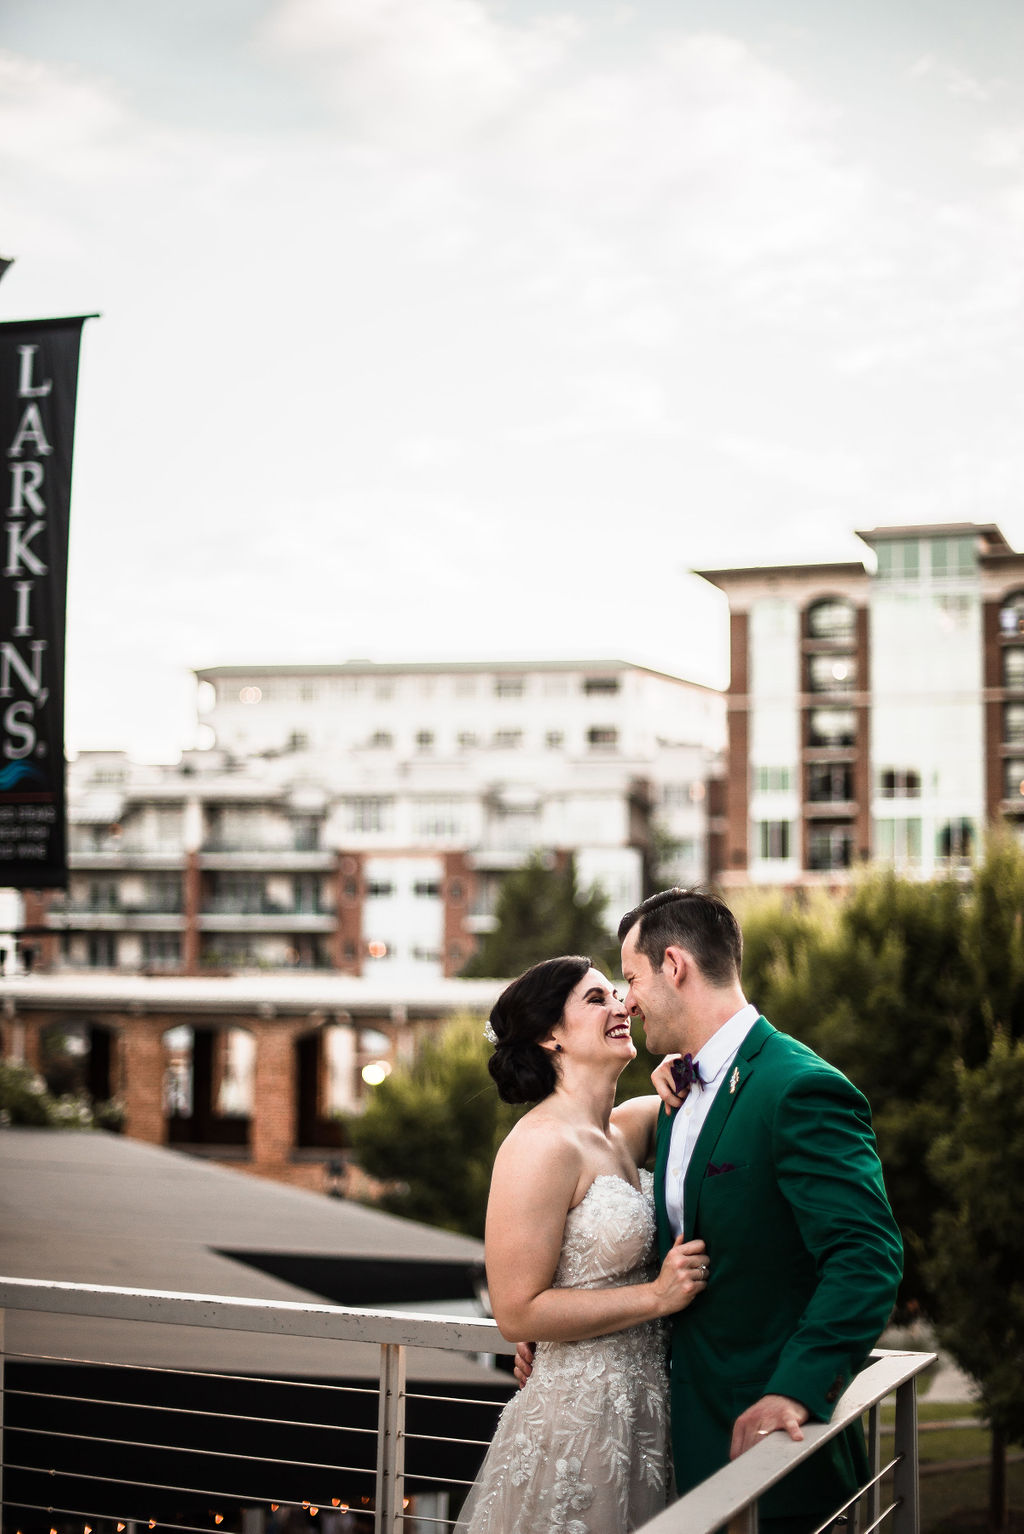 Downtown_Greenville_Wedding_Larkins-611.jpg